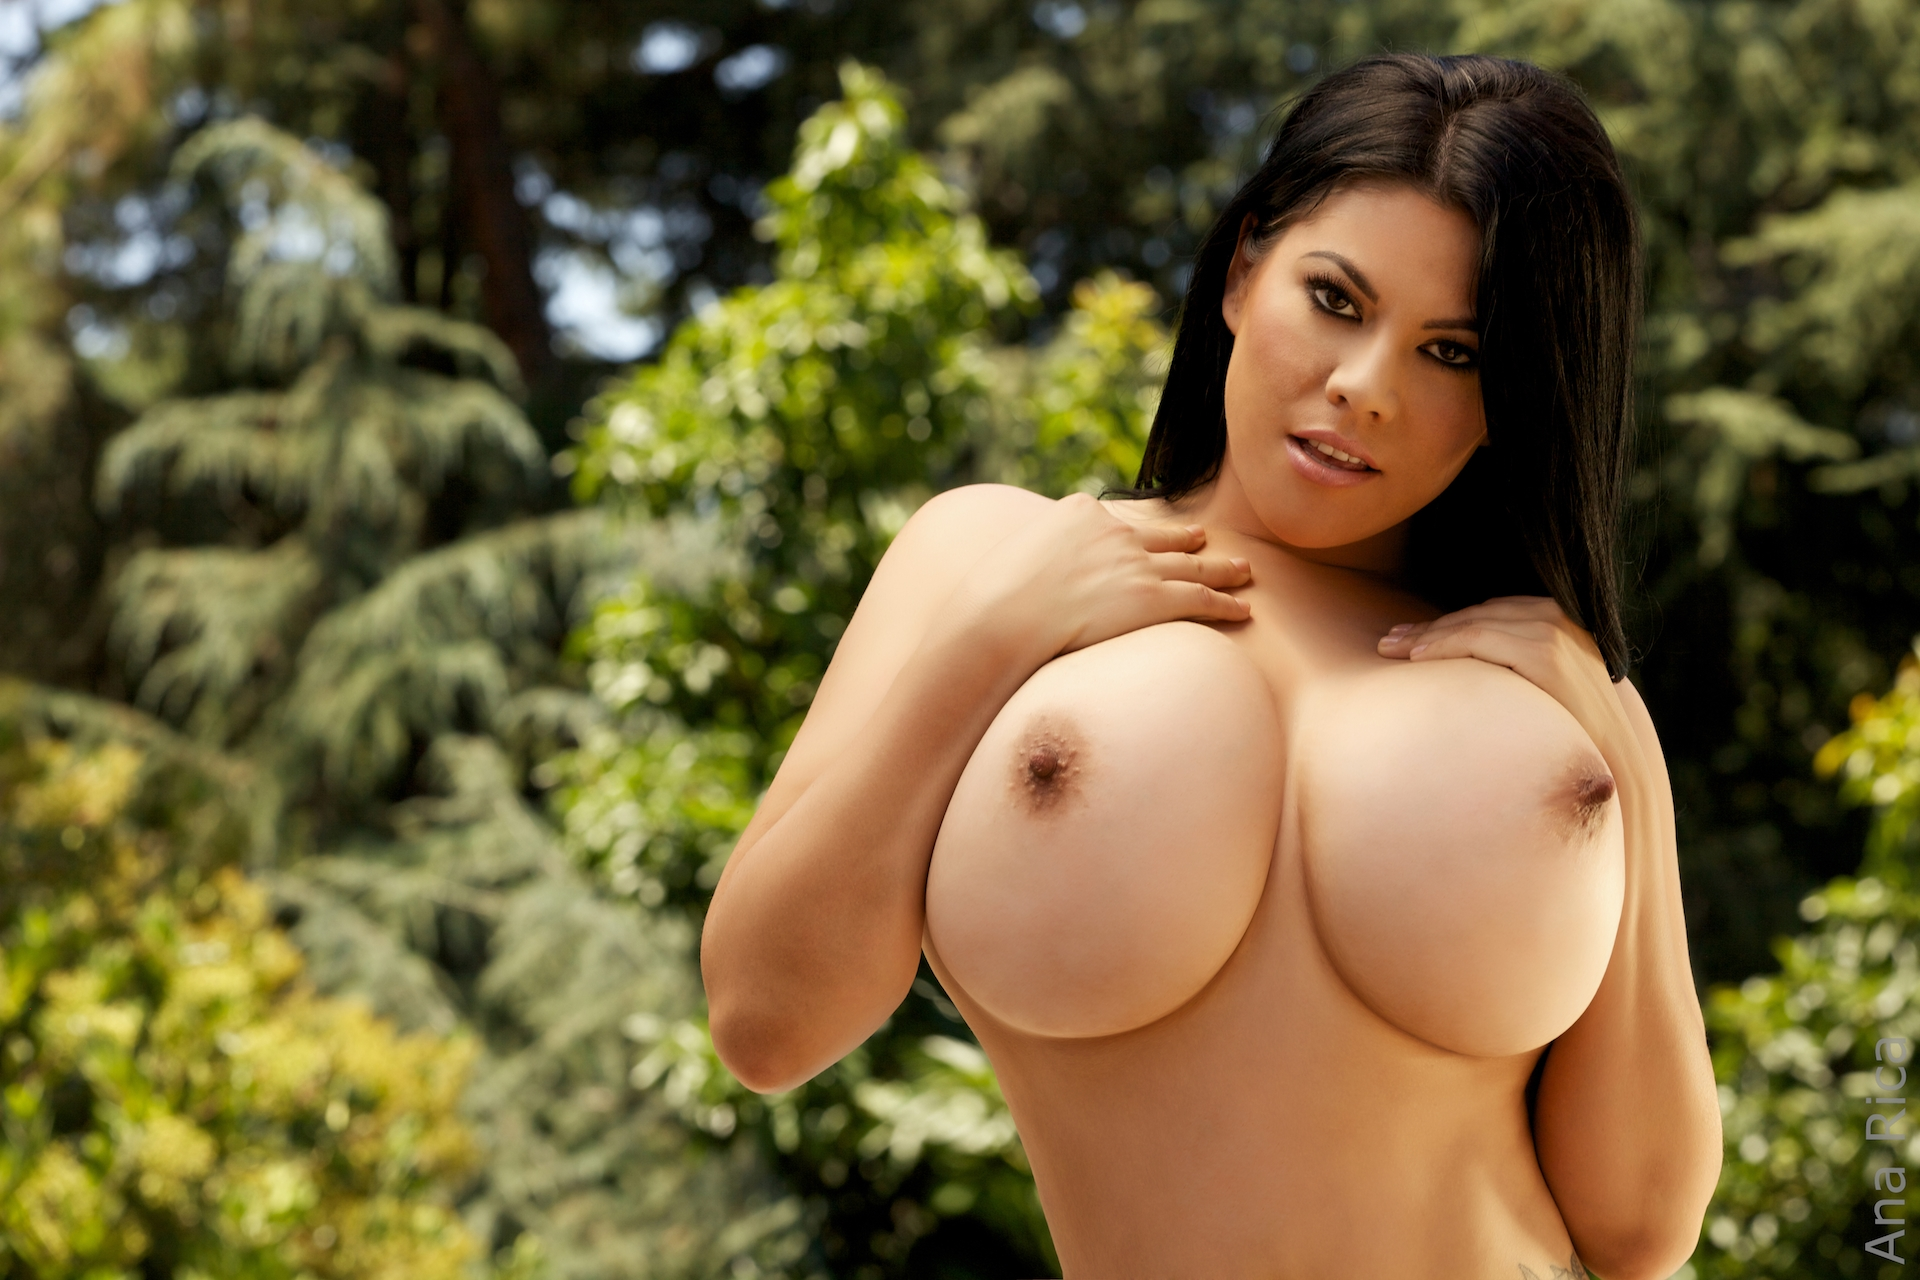 Tv big boobs, wild black sex hall of fame